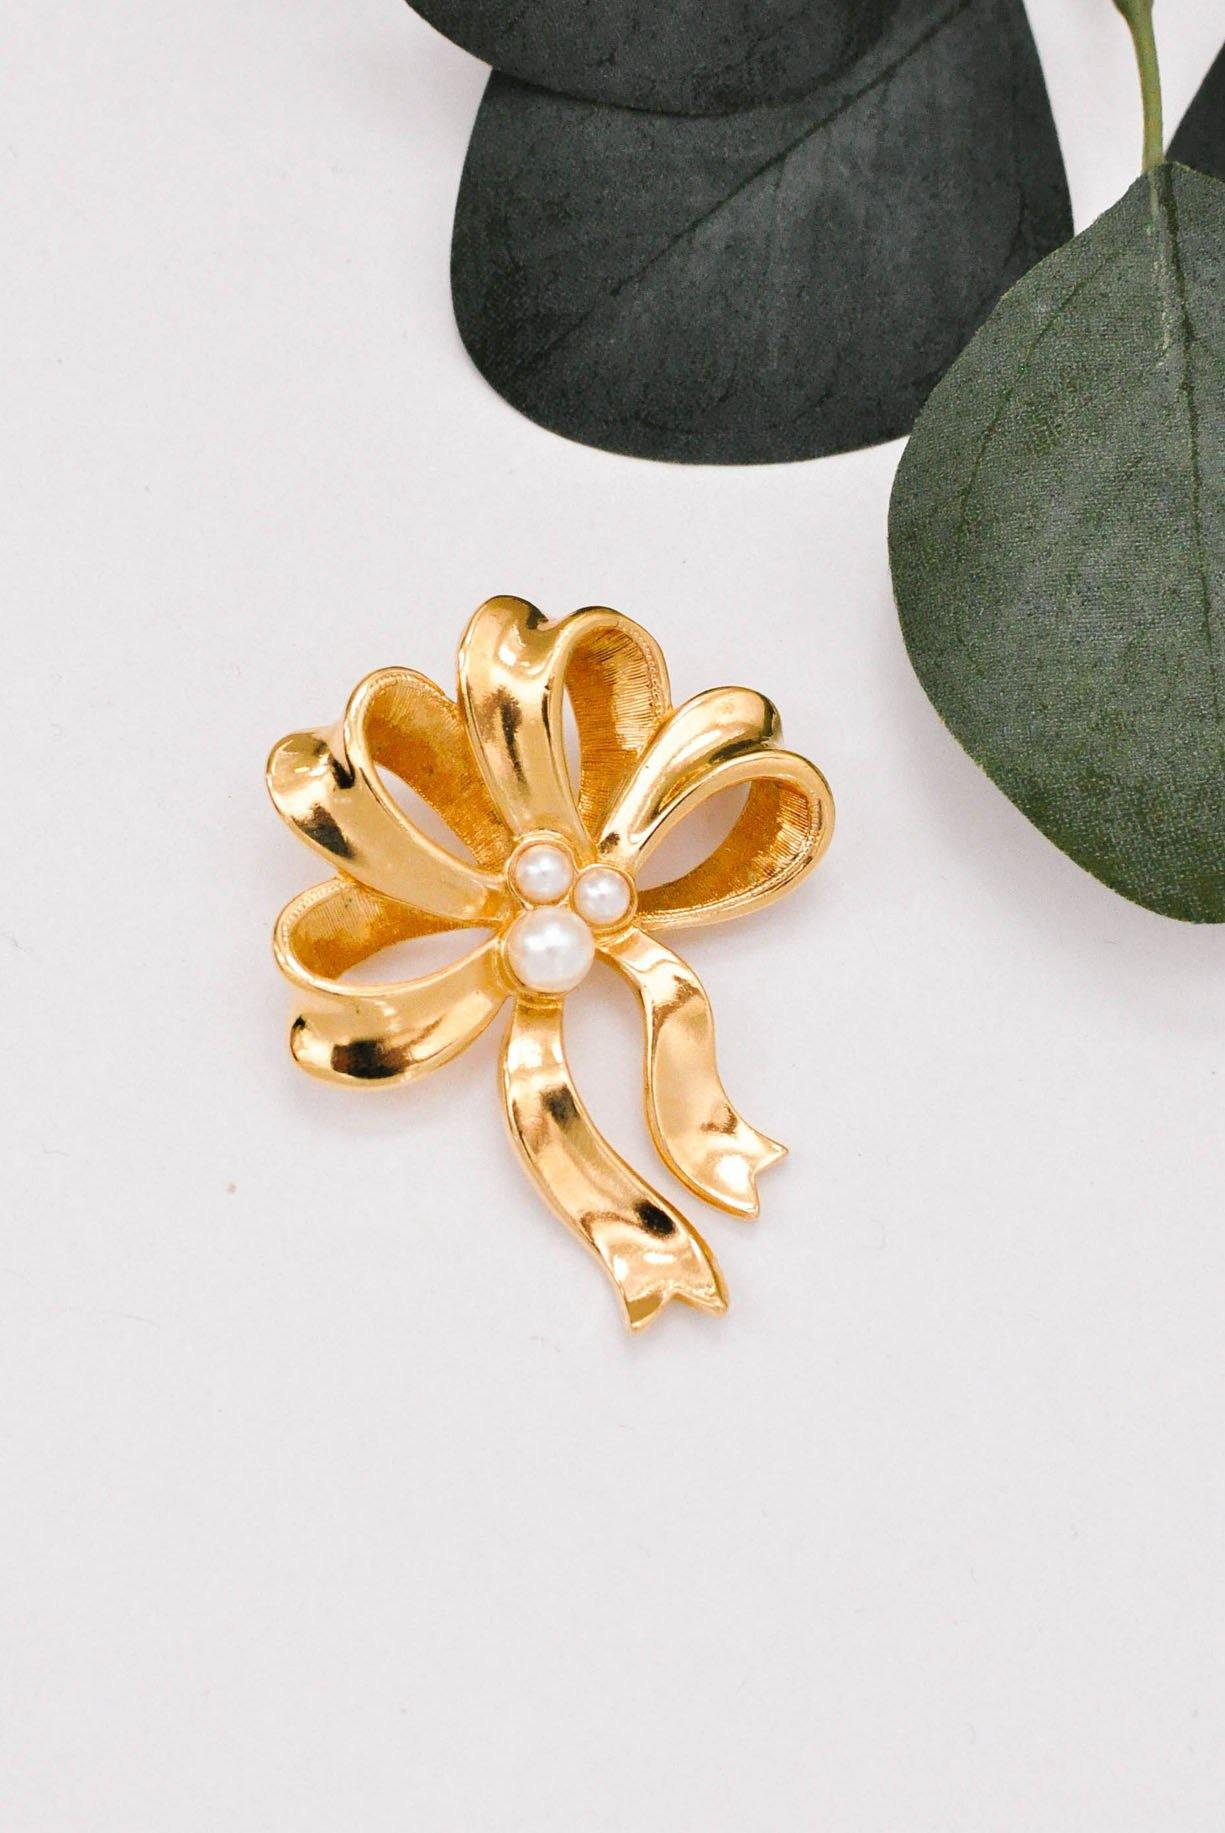 Gold and Pearl Bow Brooch